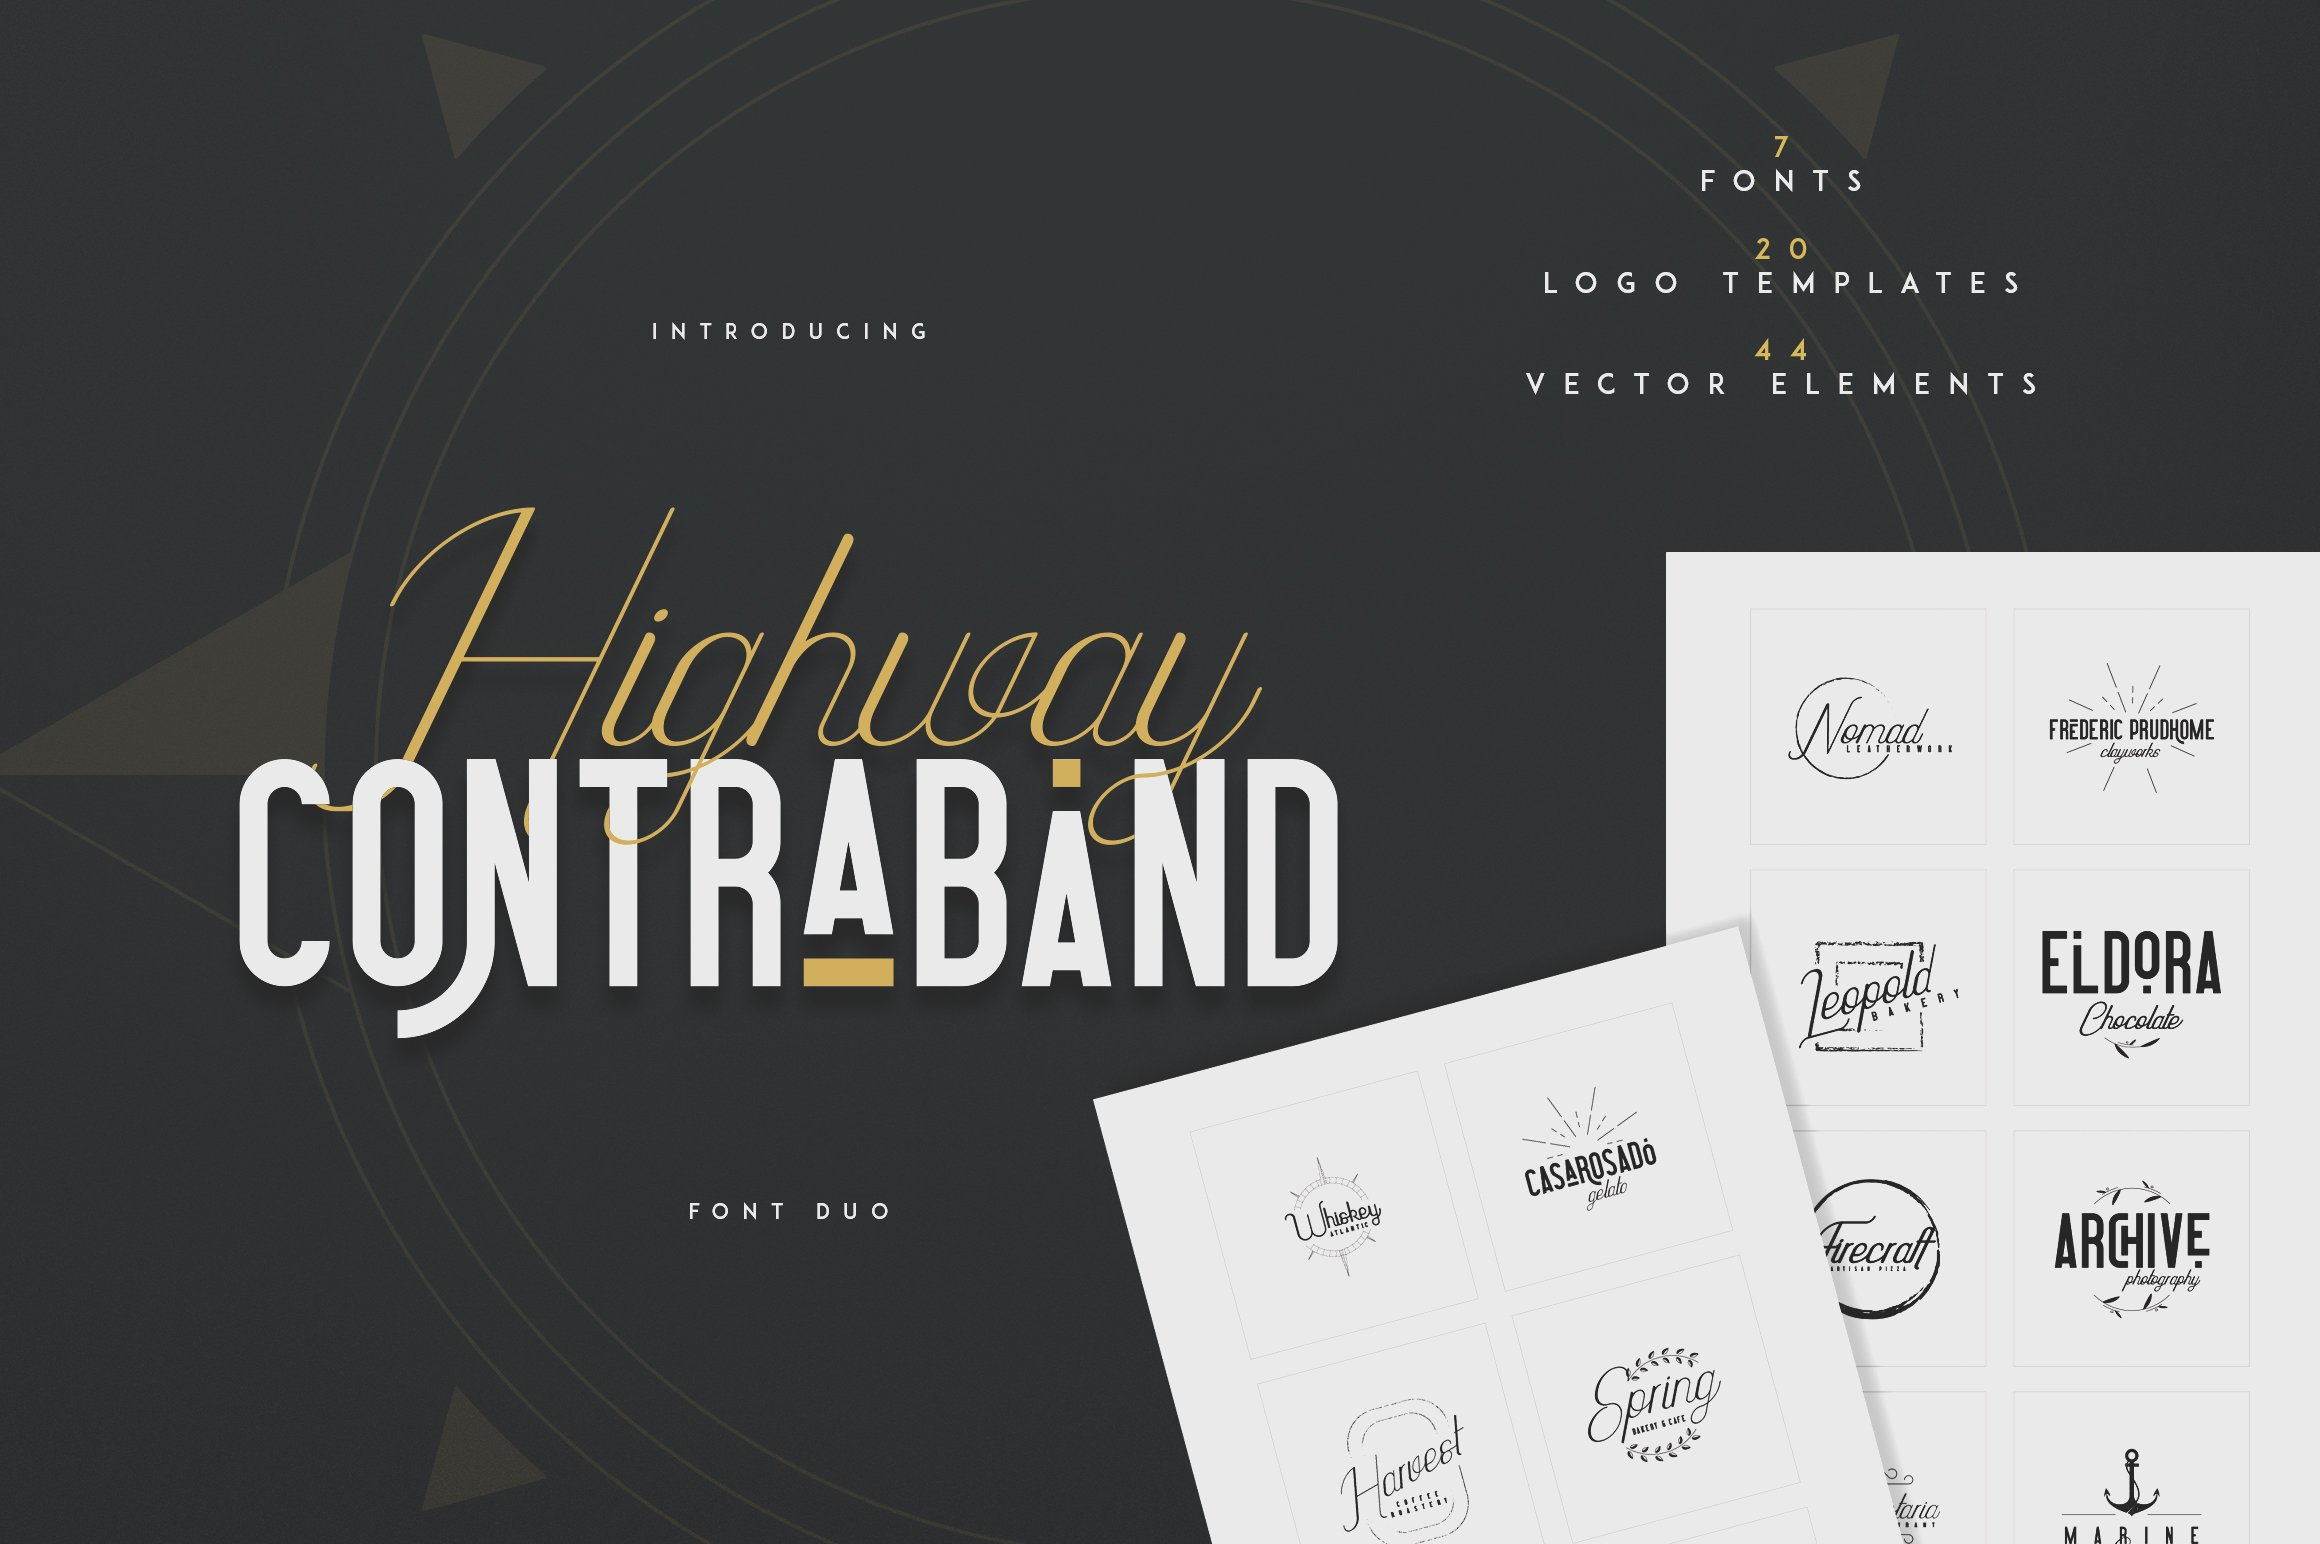 Highway Contraband Vintage Script Font Bundle: Font Duo + 20 Logo Templates + 44 Vector Elements - 1 1